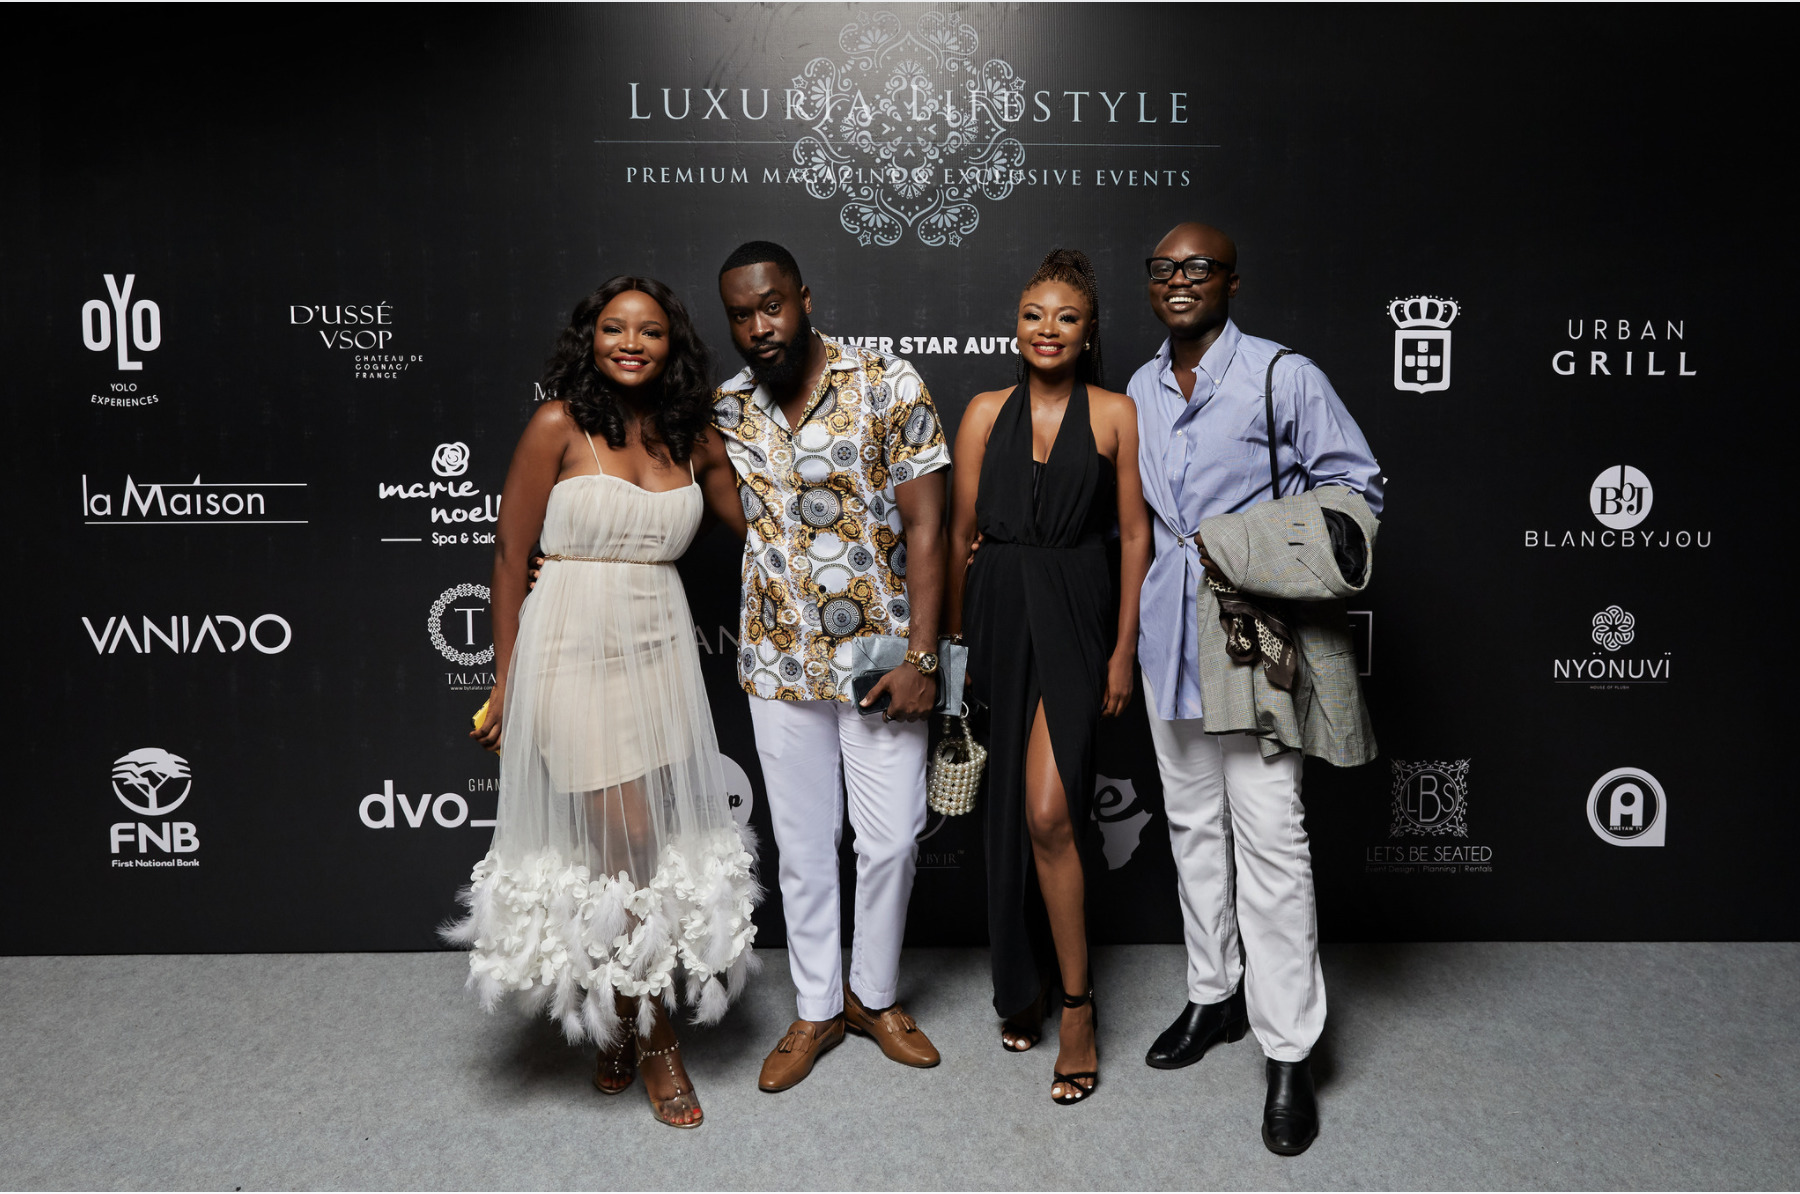 LUXURIA LIFESTYLE GHANA LAUNCH EVENT AND LUXURY BRANDS SHOWCASE / VIP PARTY, YOLO EXPERIENCES ACCRA NOV 2020